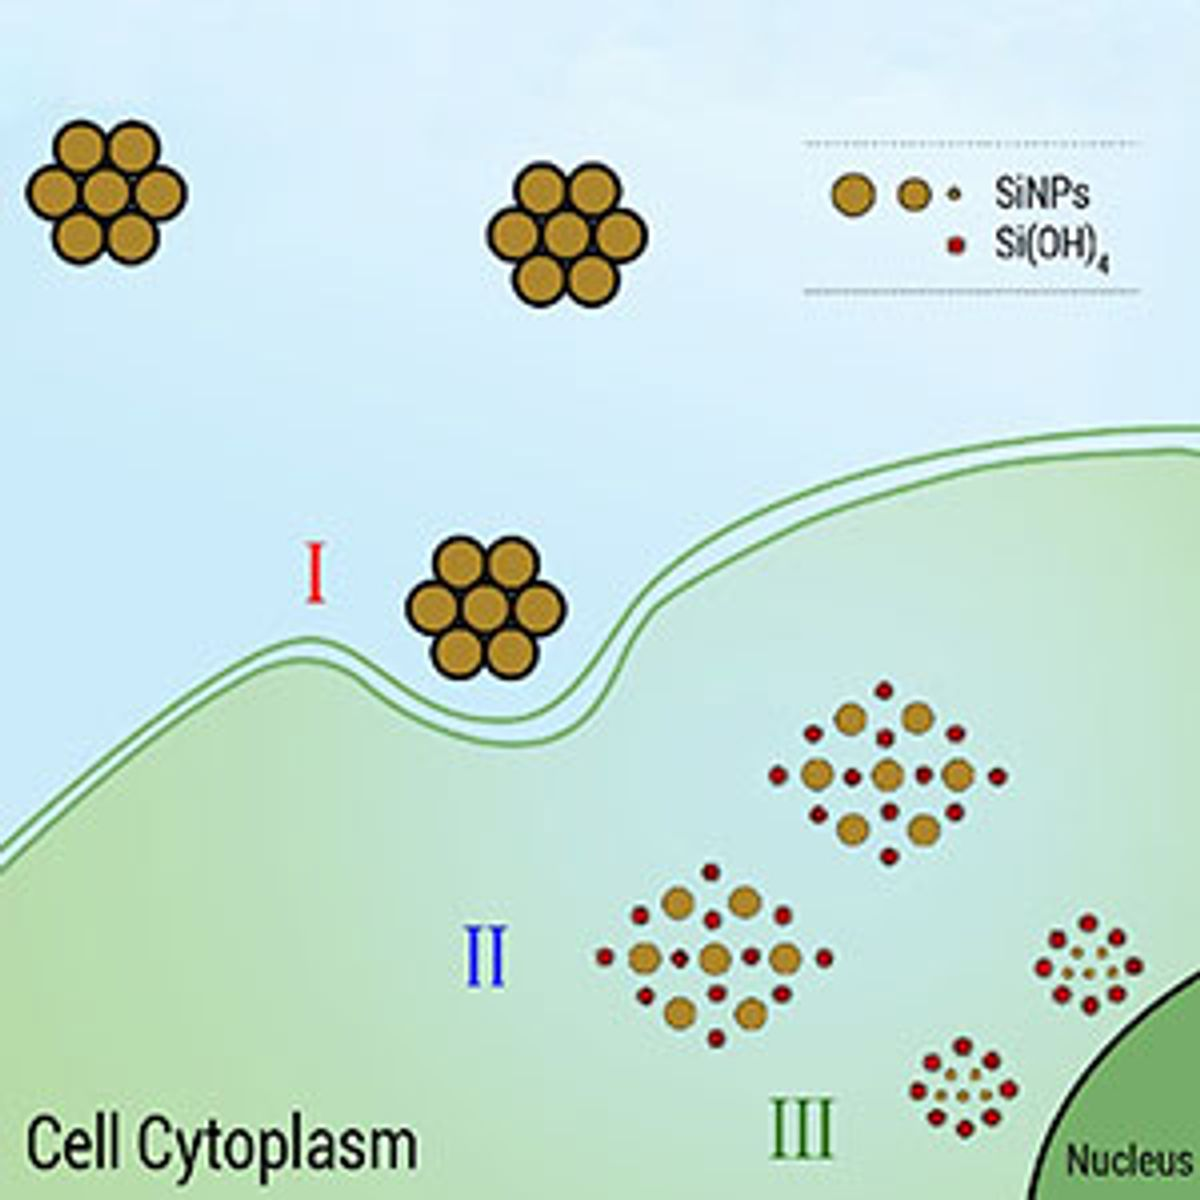 Porous silicon nanoparticles offer harmless theraphy and diagnostic solution for many types of cancer